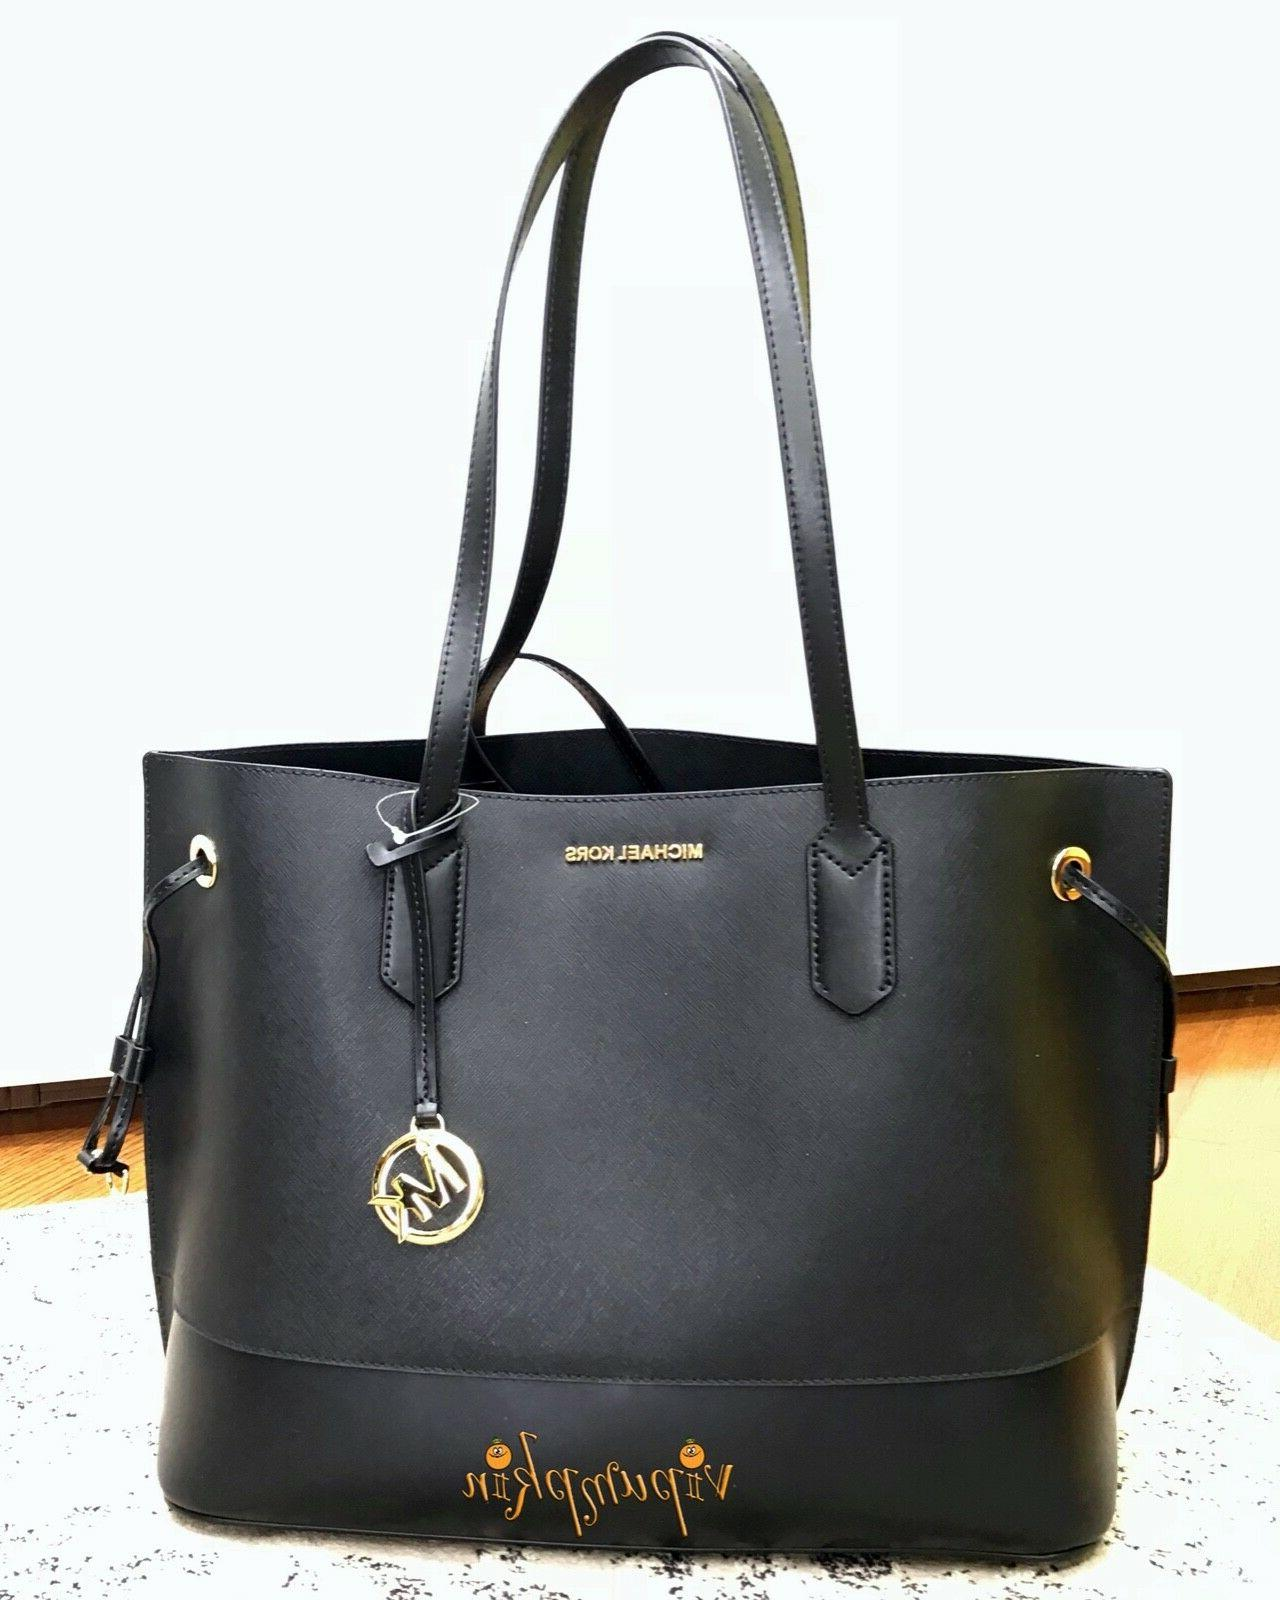 Michael Kors Trista Drawstring Bag Black